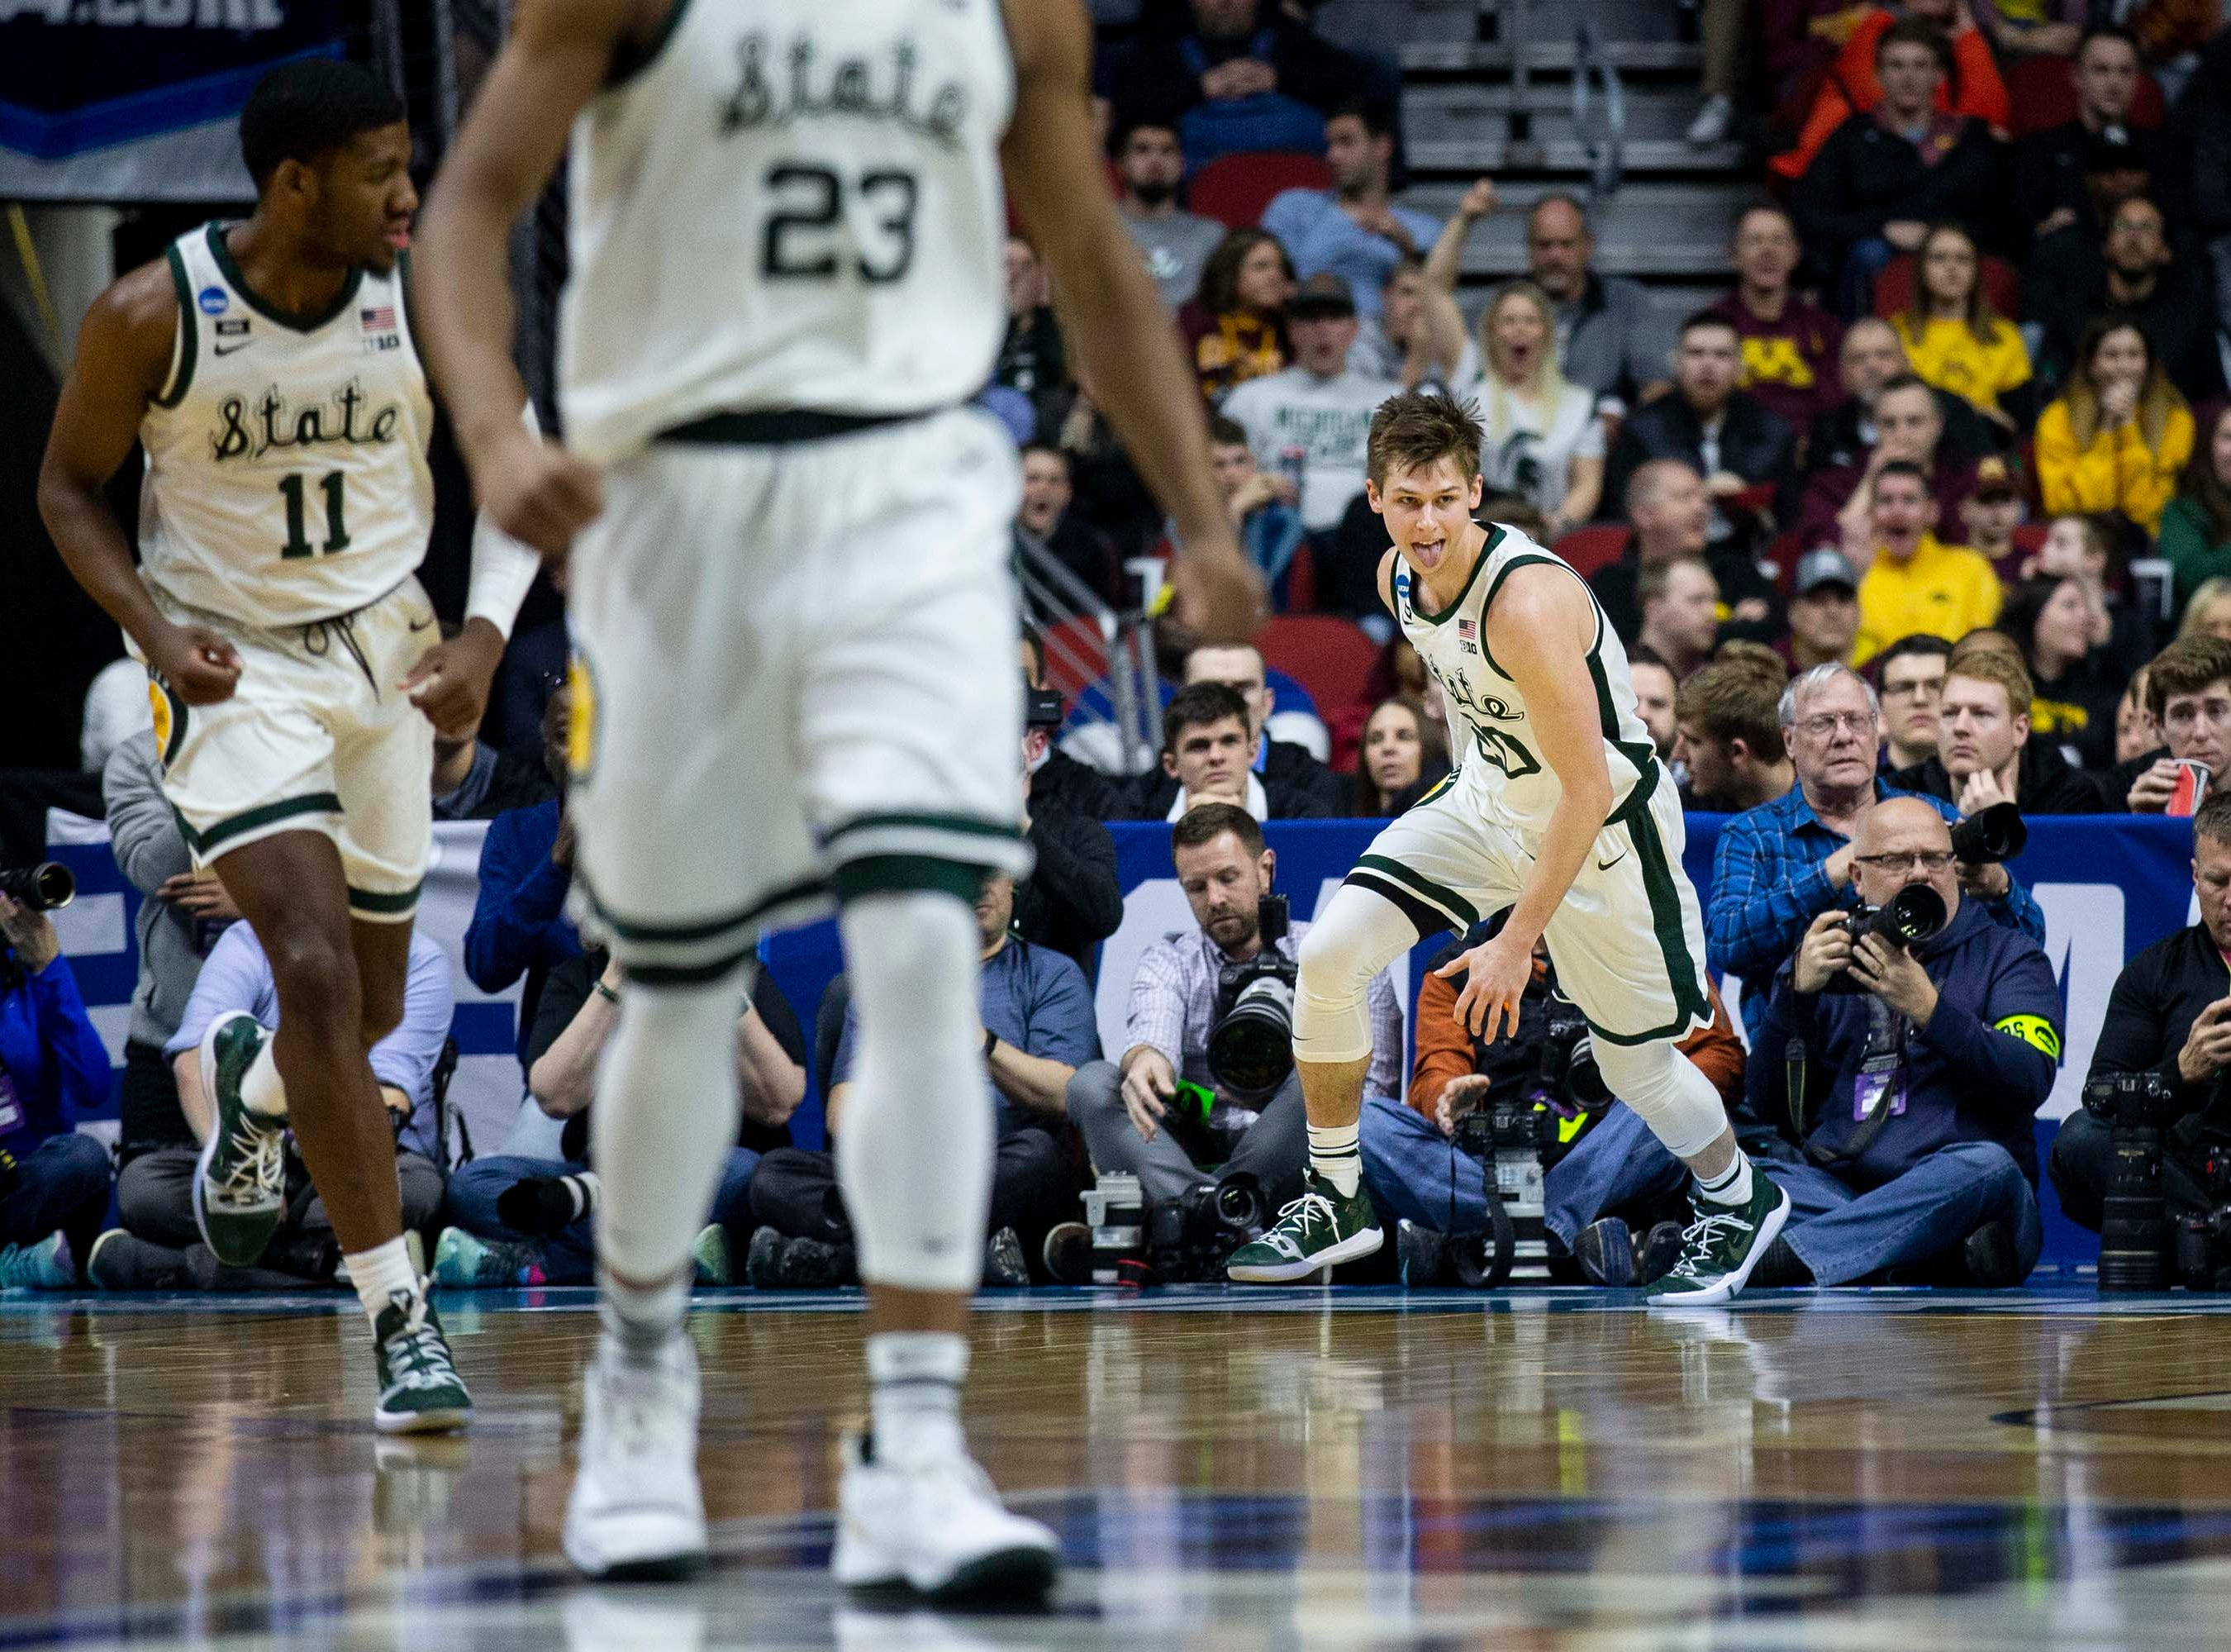 Michigan State's Matt McQuaid celebrates after scoring during the NCAA Tournament second-round match-up between Minnesota and Michigan State on Saturday, March 23, 2019, in Wells Fargo Arena in Des Moines, Iowa.